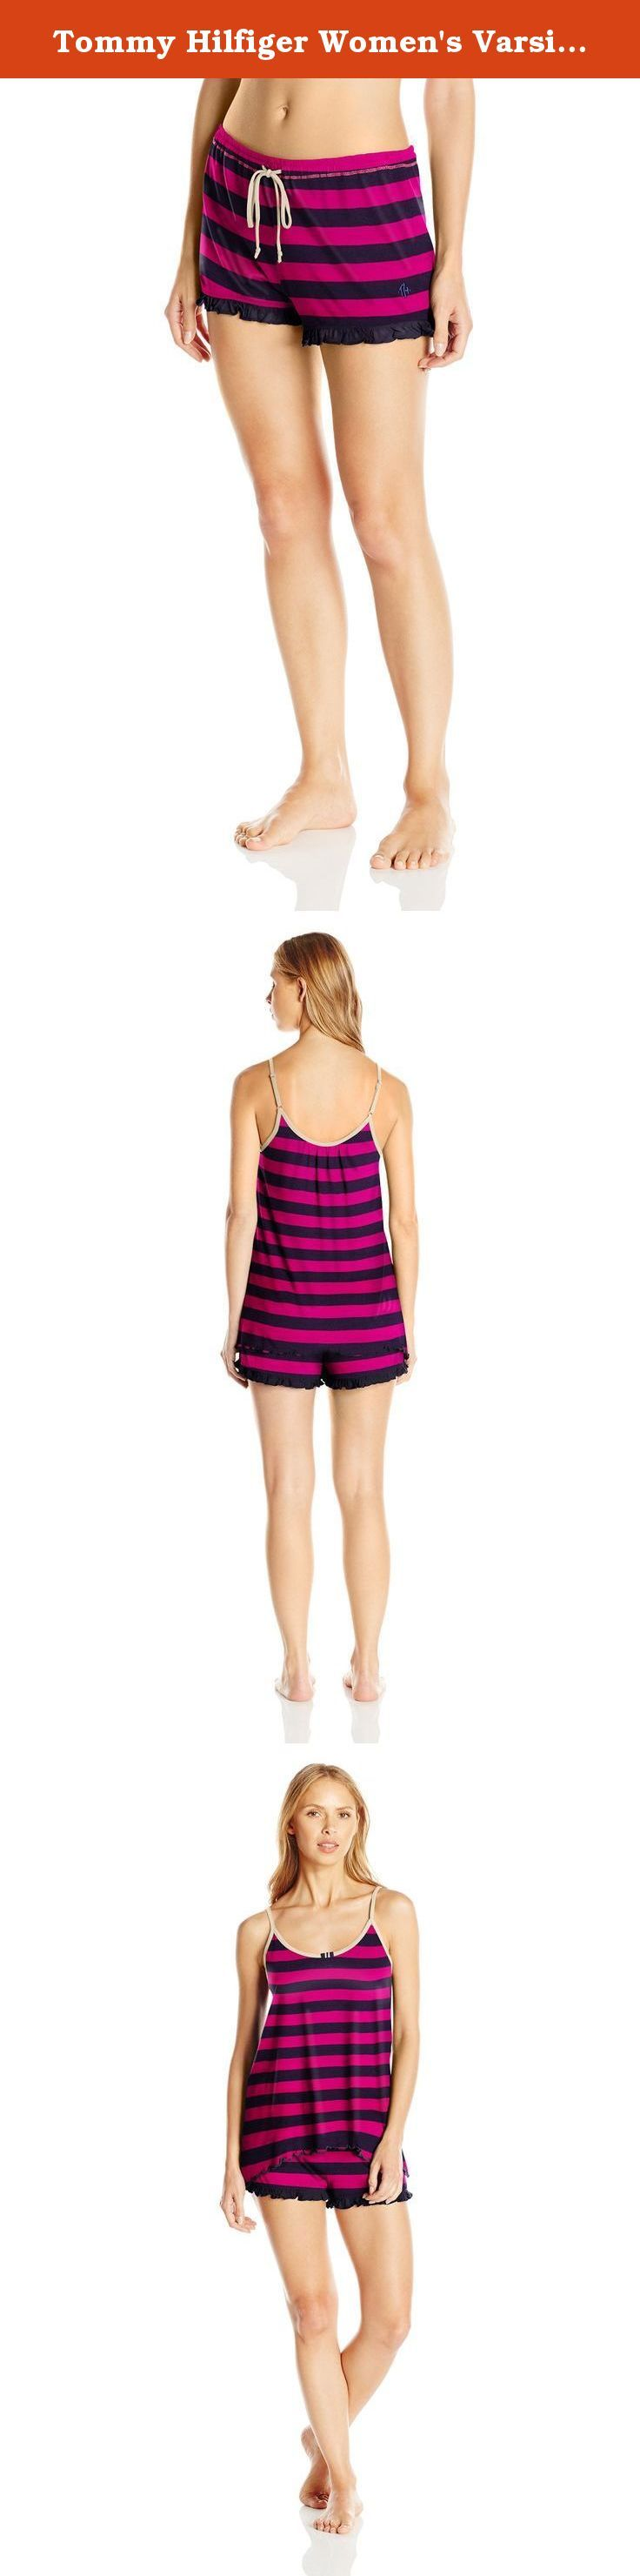 Tommy Hilfiger Women's Varsity Cami and Short Pj Set, Mixed Berry Rugby, X-Large. The perfect mix of sporty and girly with our varsity cami and short pajama set, sleep in style and enjoy our soft lightweight fabric blend.